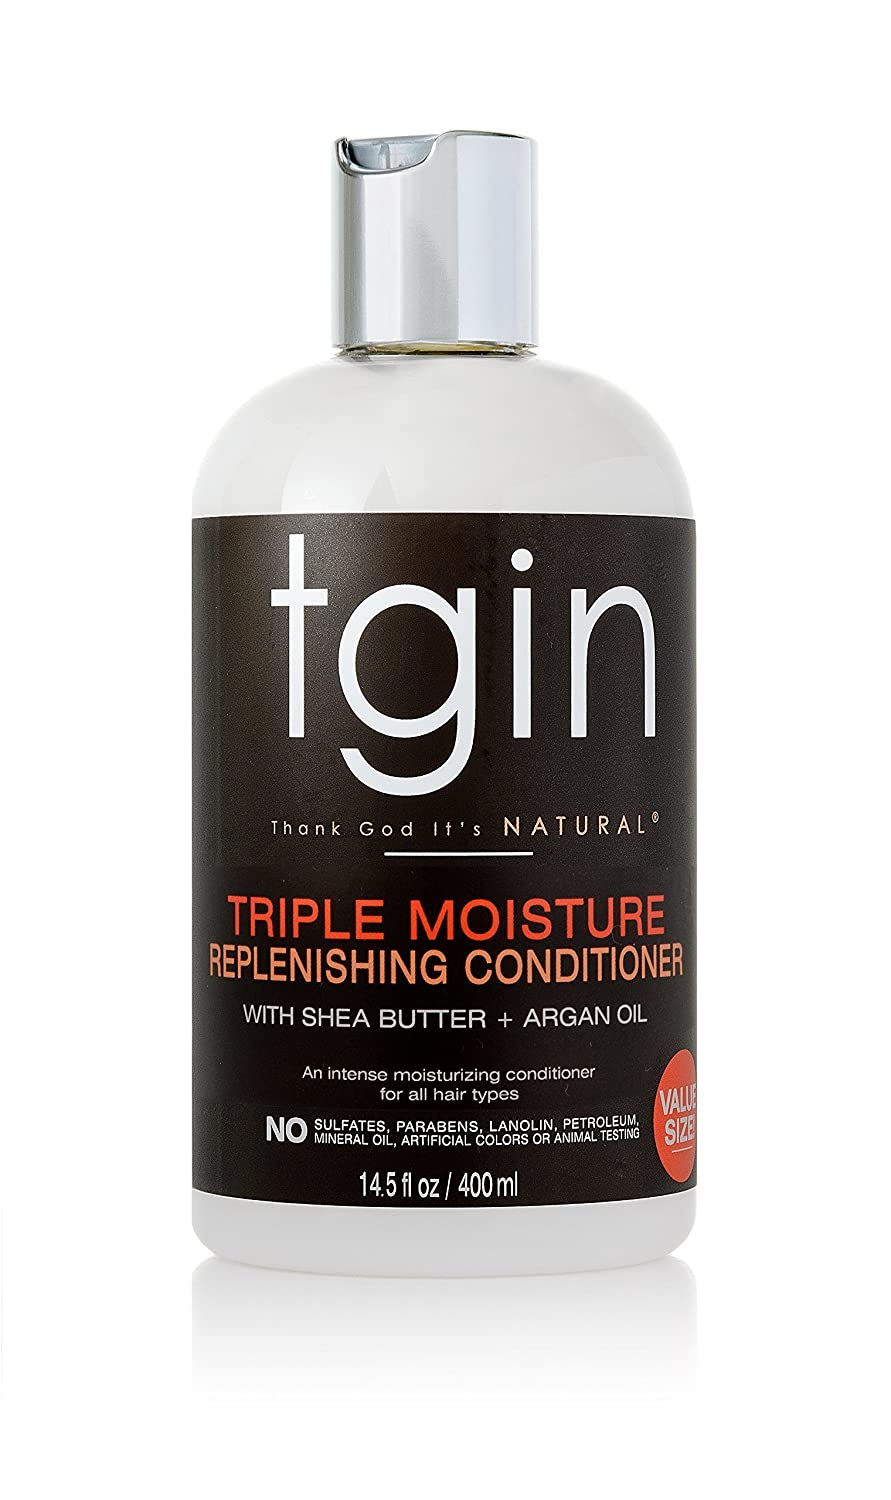 tgin Triple Moisture Replenishing Conditioner For Natural Hair - Dry Hair - Curly Hair - 13 Oz